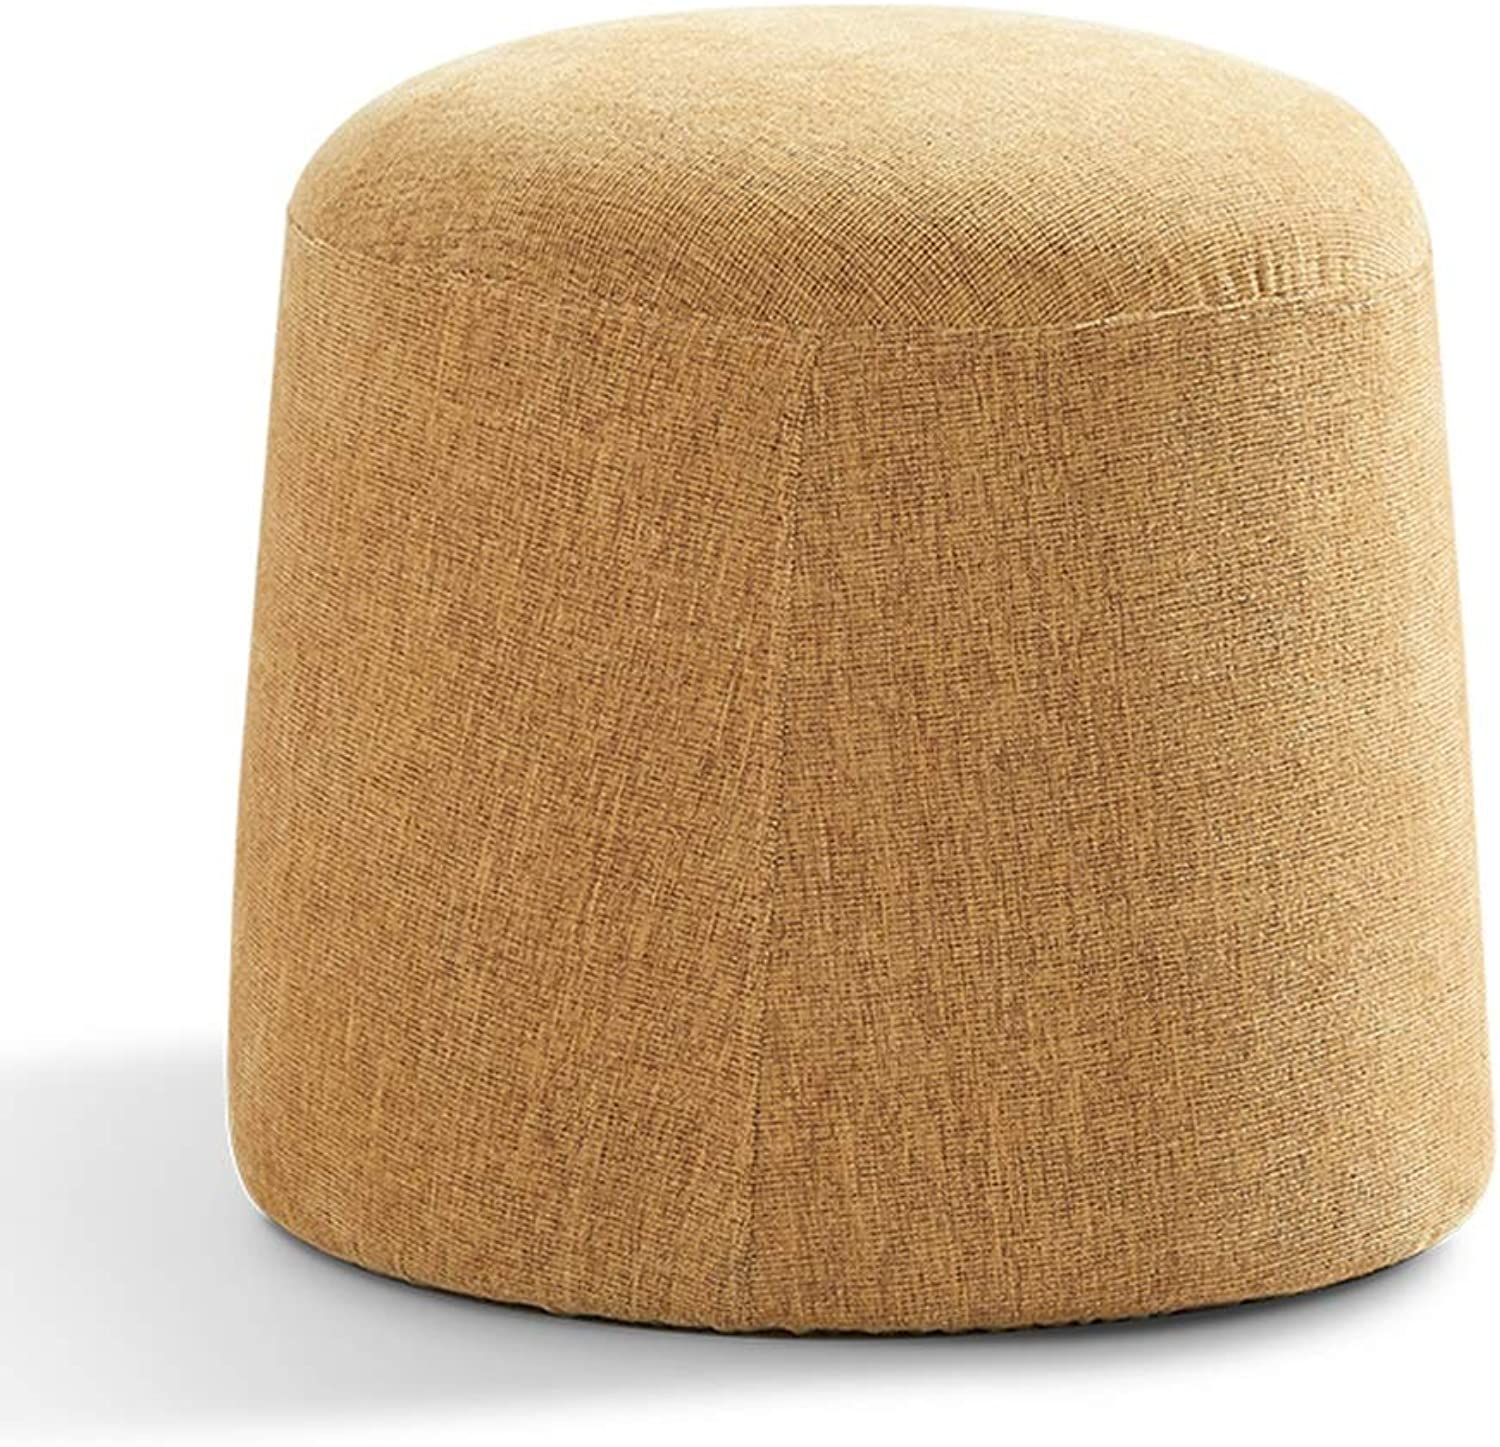 Sofa Stool Change shoes Stool Solid Wood Linen Creative Multifunctional Makeup Stool (color   Yellow, Size   39  37cm)